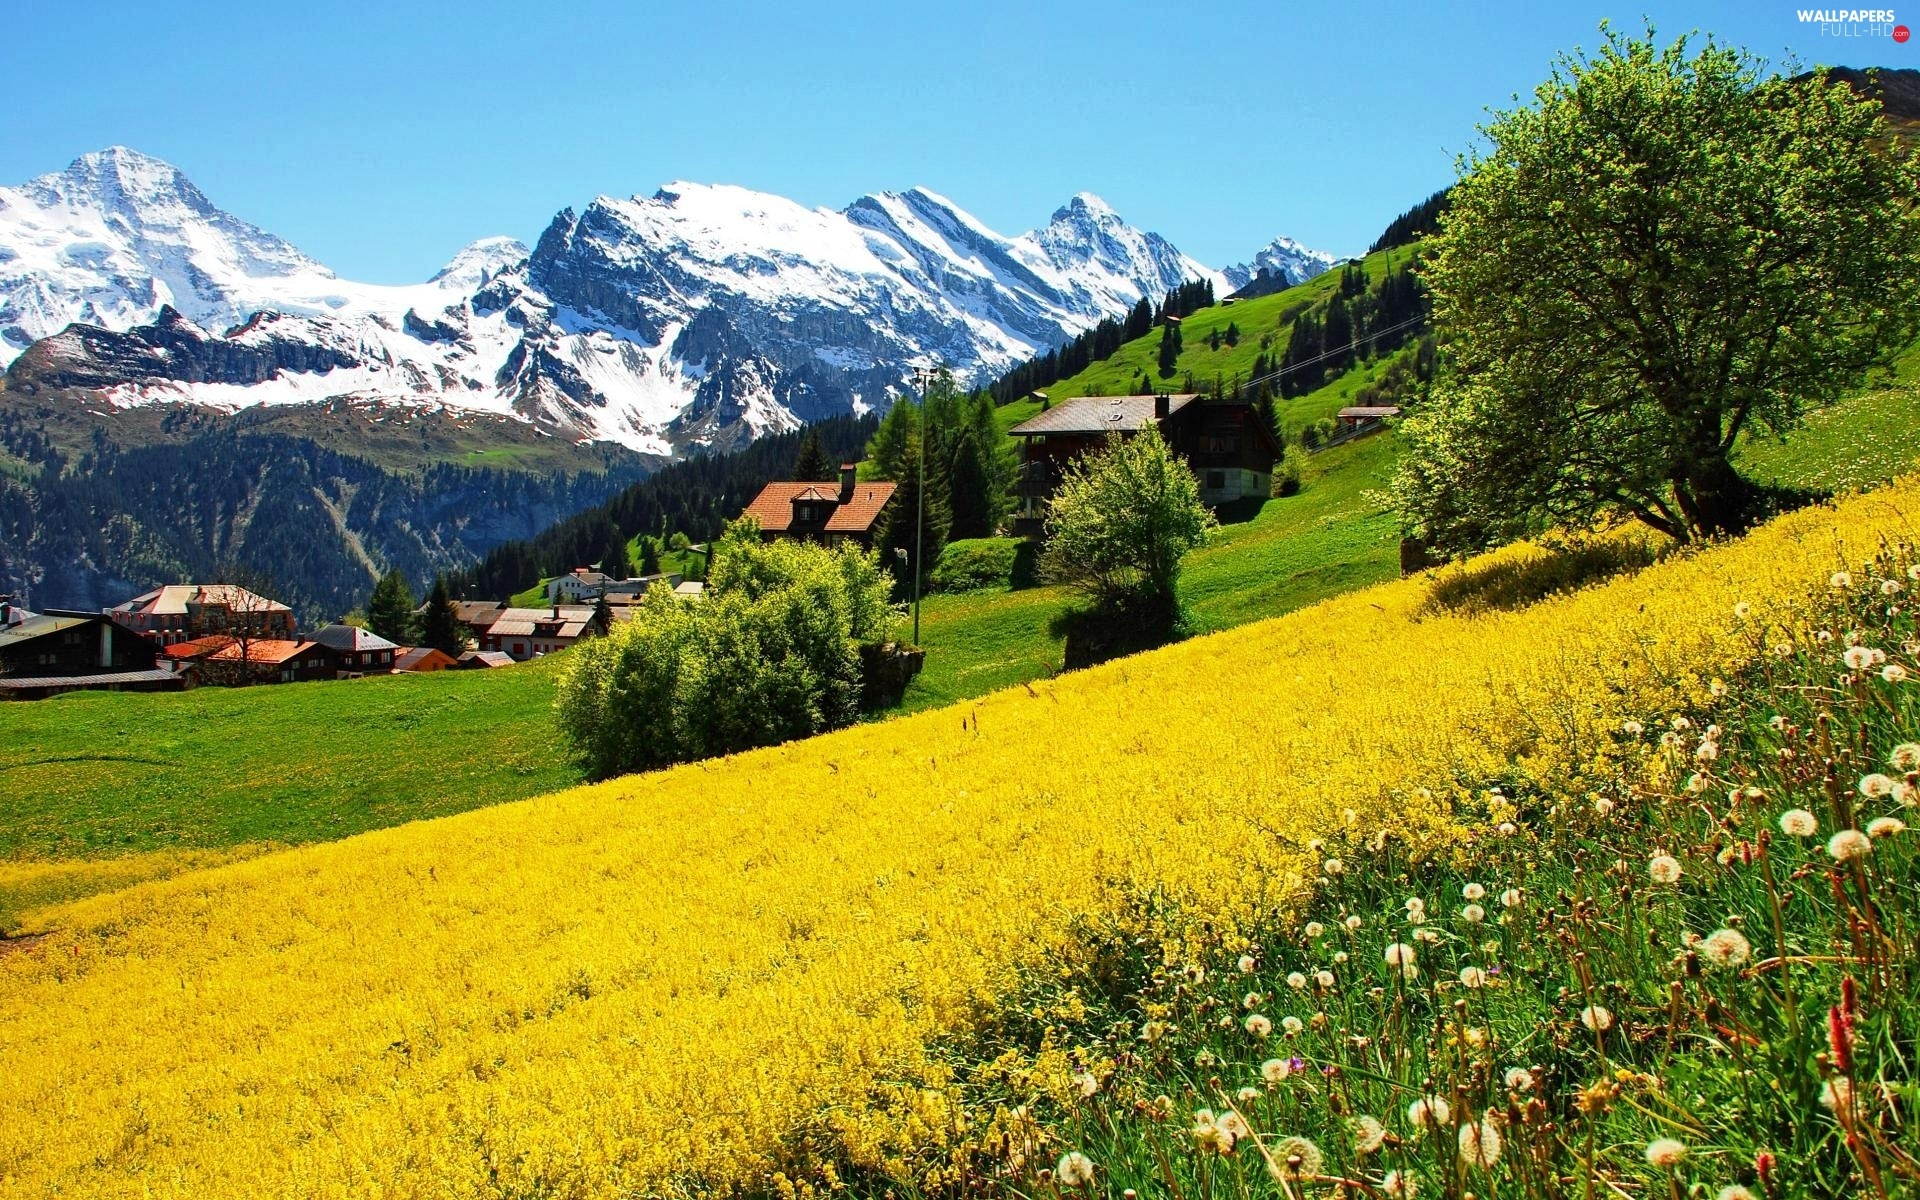 Switzerland, Houses, Mountains, Meadow